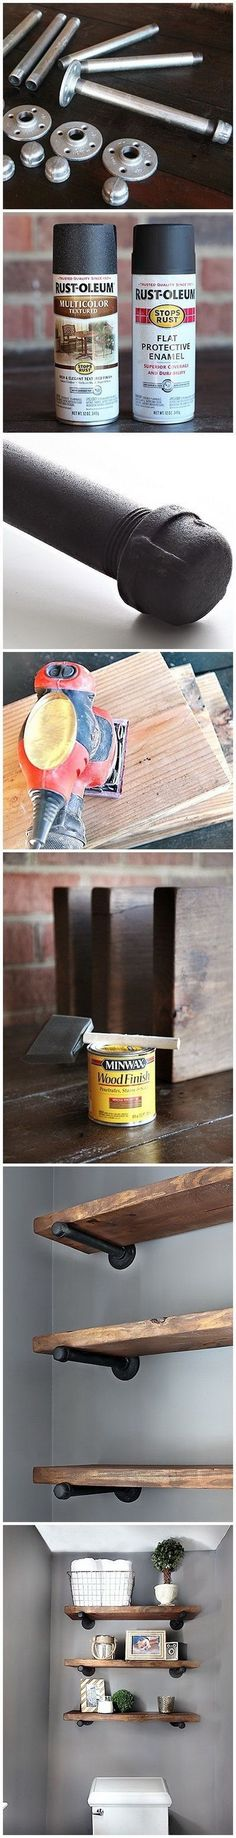 Plans of Woodworking Diy Projects - DIY Restoration Hardware - Inspired Shelving Get A Lifetime Of Project Ideas & Inspiration! Design Industrial, Industrial Furniture, Industrial Storage, Vintage Furniture, Plumbing Pipe Furniture, Industrial Lamps, Vintage Industrial, Diy Tumblr, Diy Holz